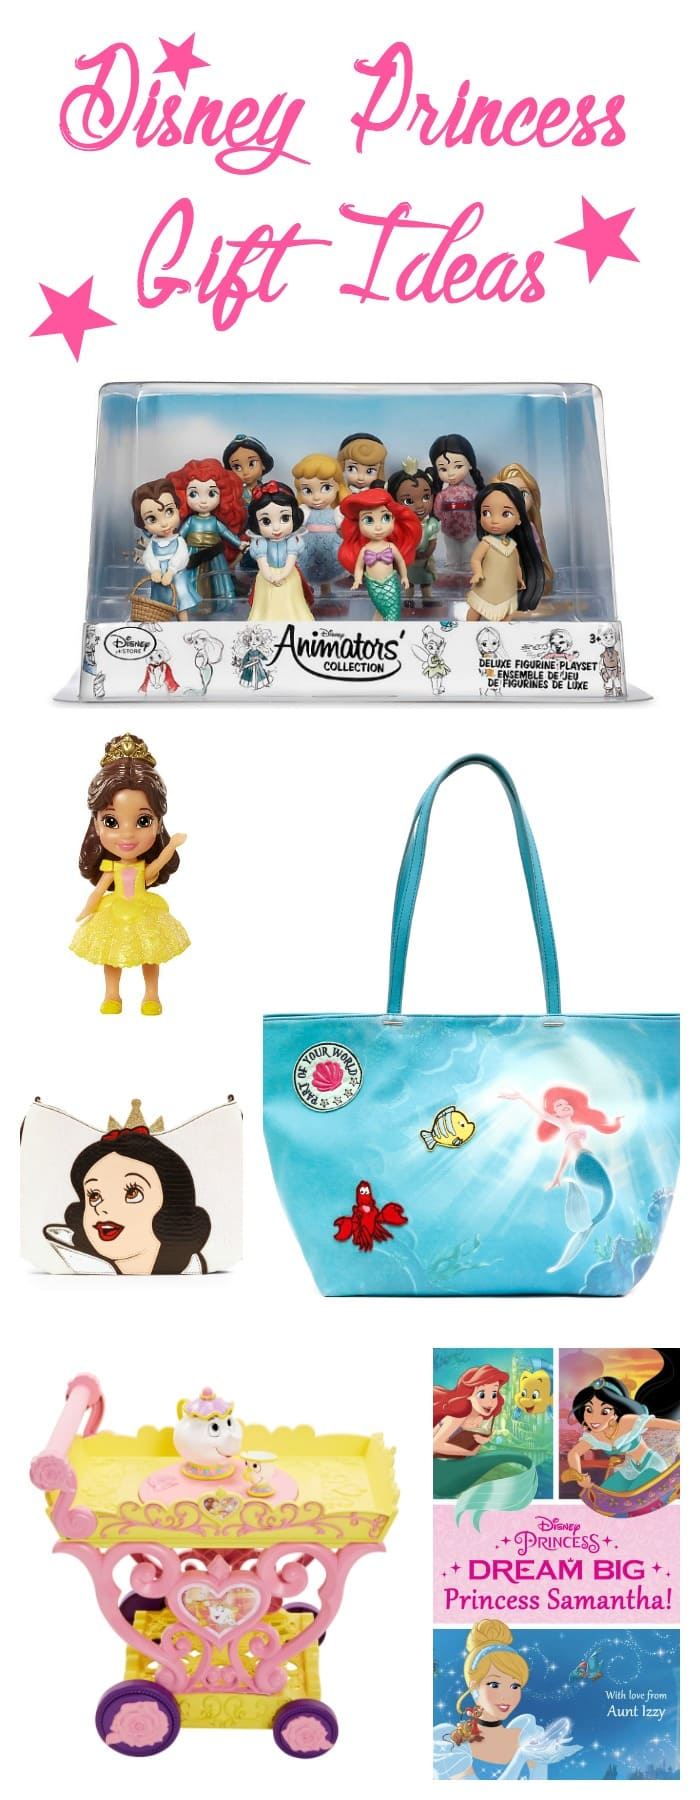 Love these Disney Princess Gift Ideas!